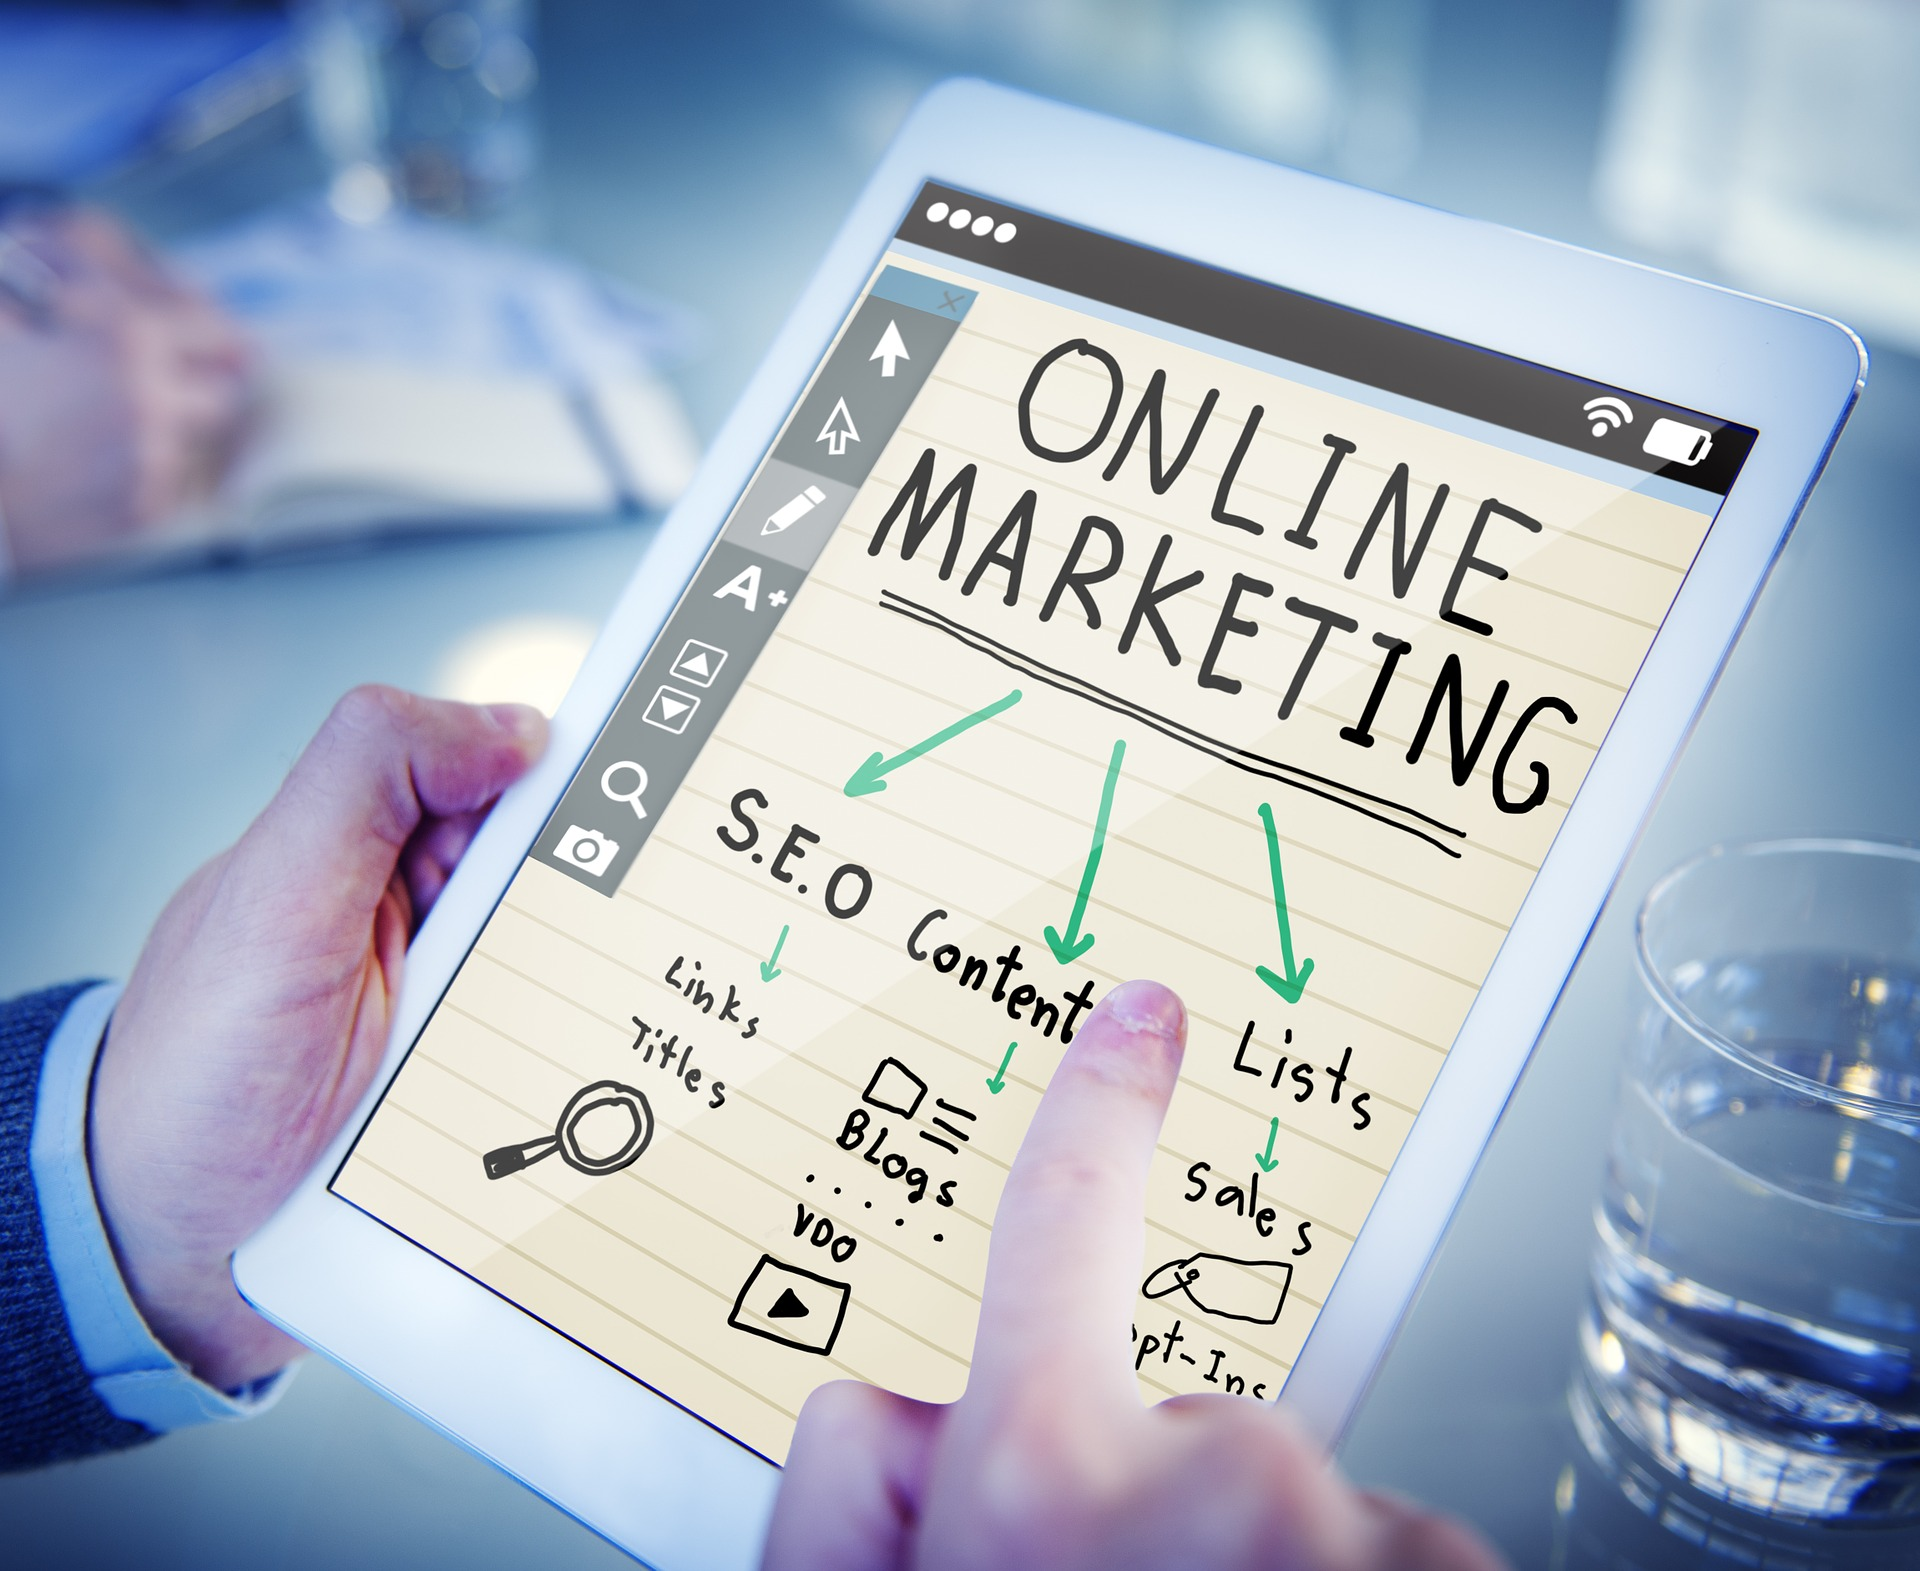 The who, what, why, and how of Digital Marketing